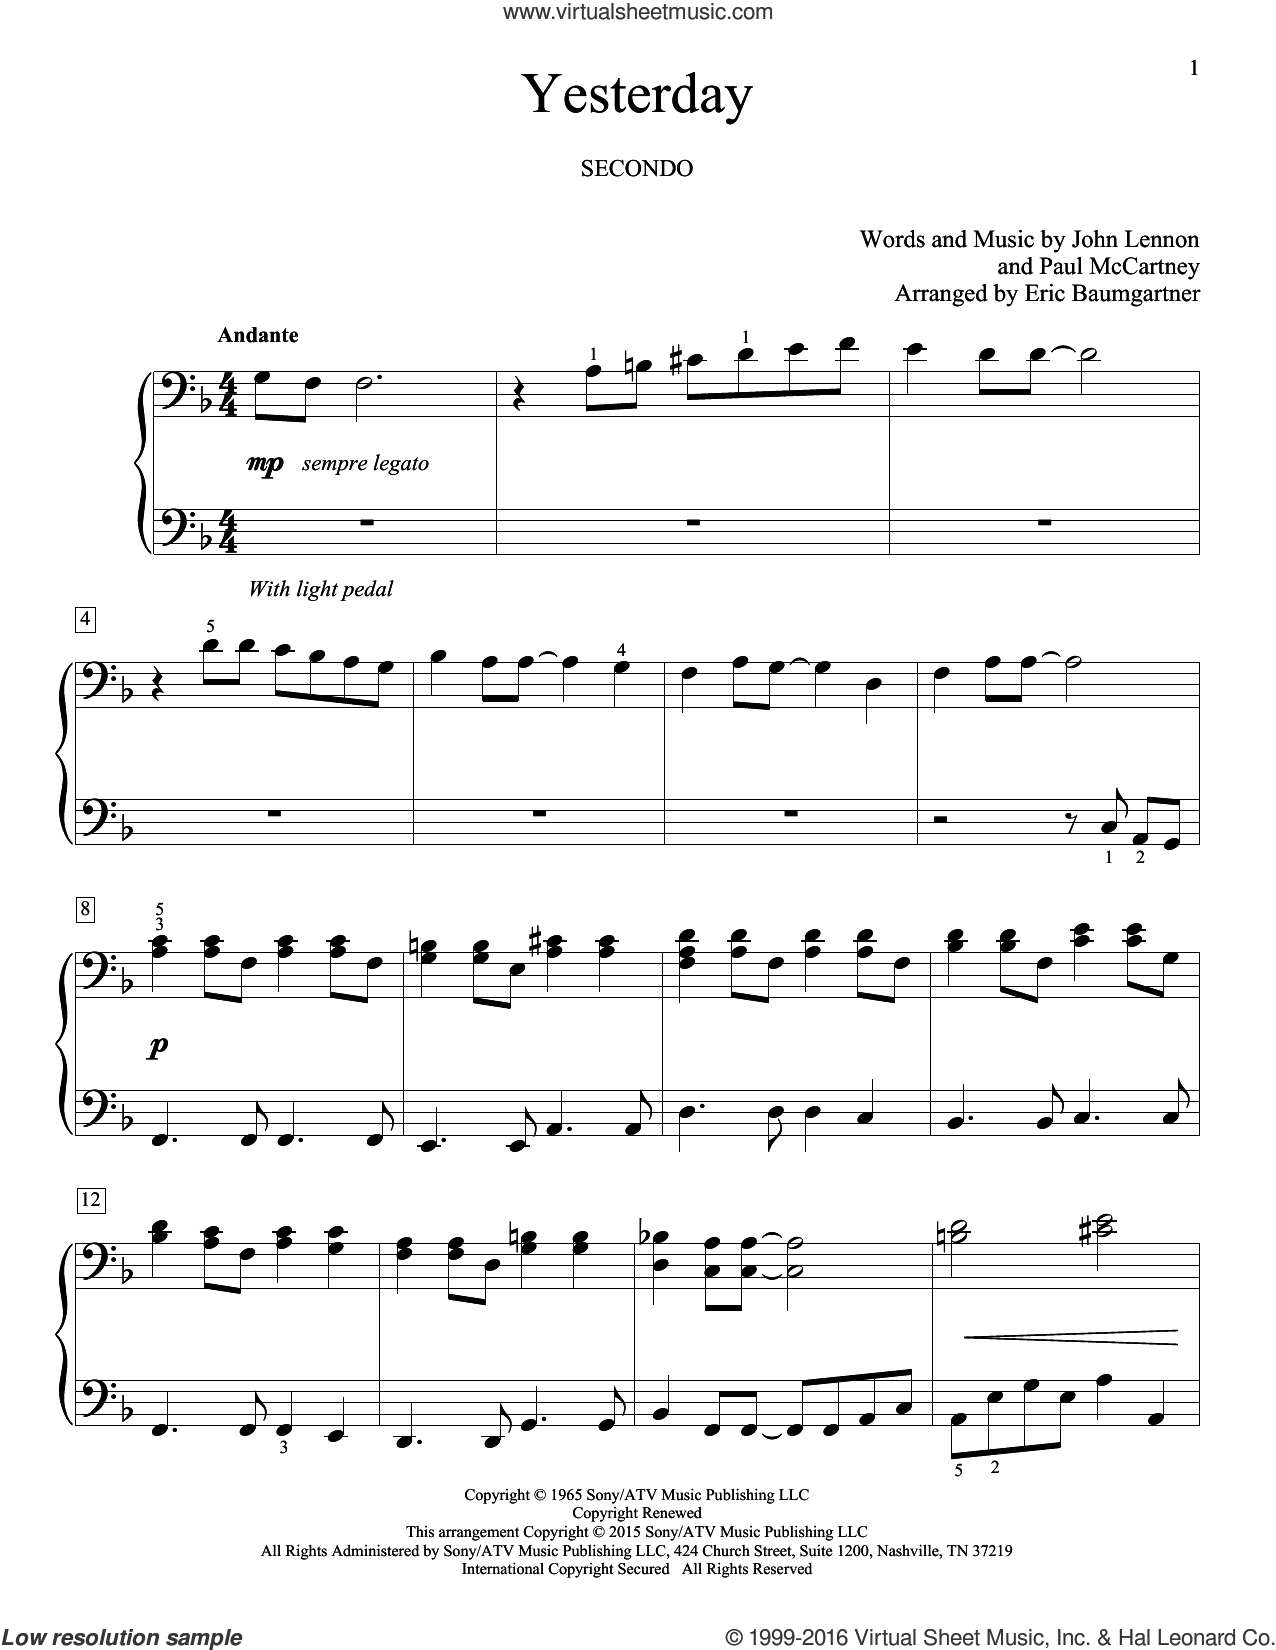 Yesterday sheet music for piano four hands by Paul McCartney, Eric Baumgartner, The Beatles and John Lennon, intermediate skill level